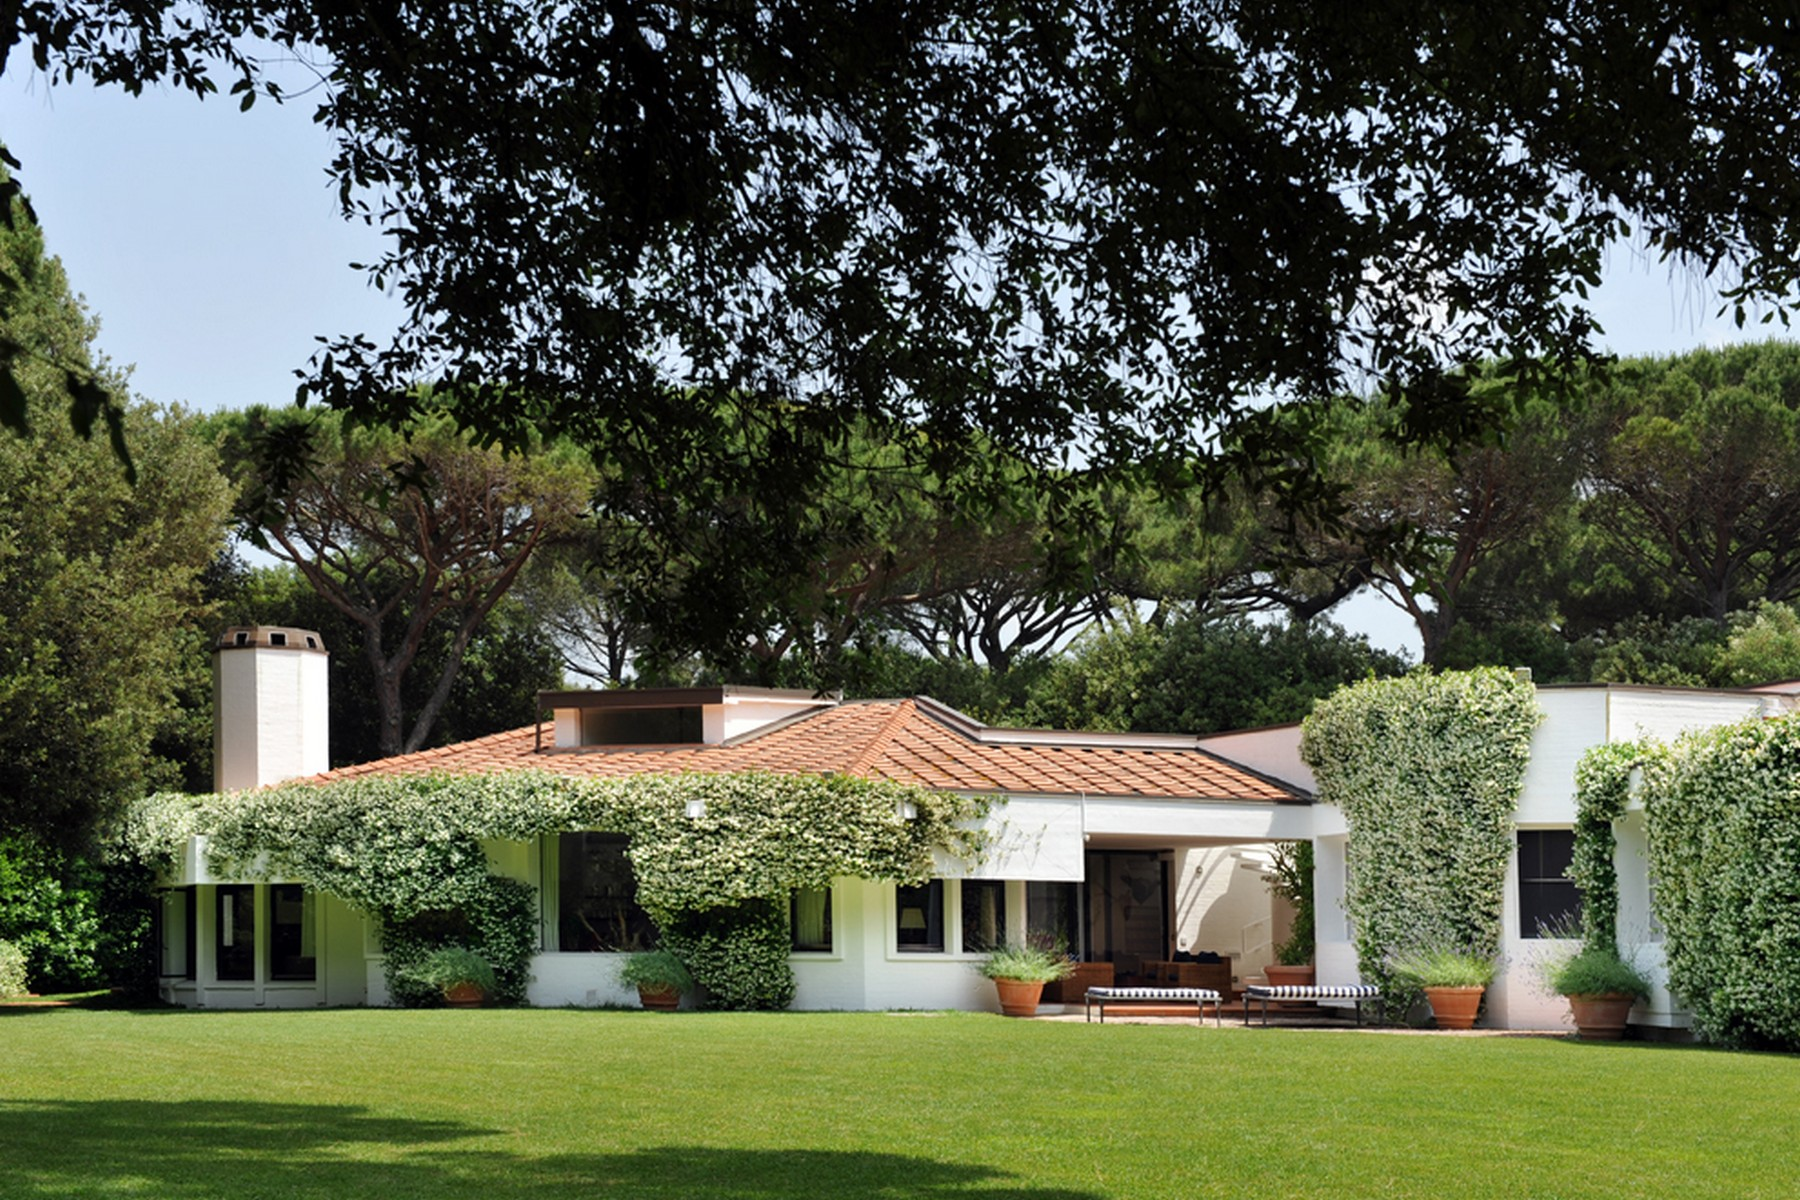 Other Residential for Sale at Stately estate with private beach Bolgheri Bolgheri, Livorno 57020 Italy